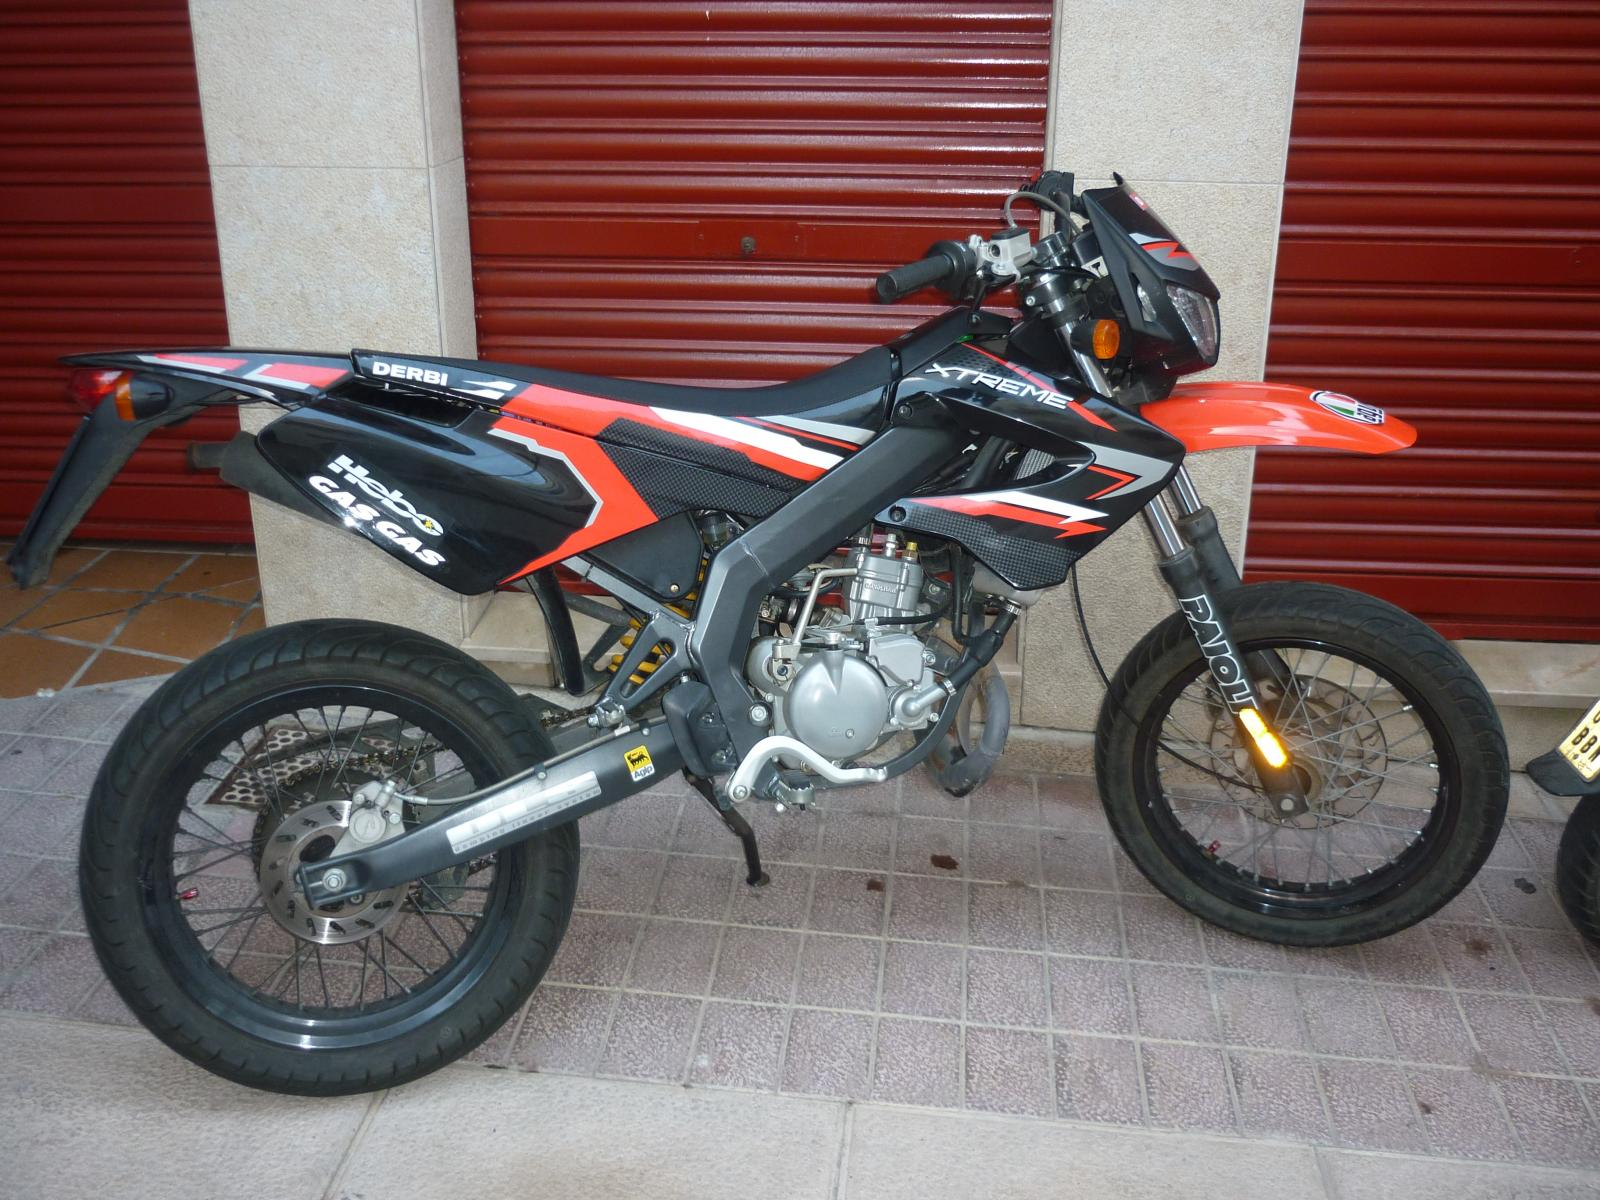 Derbi Senda X-treme 50 SM 2010 images #70959